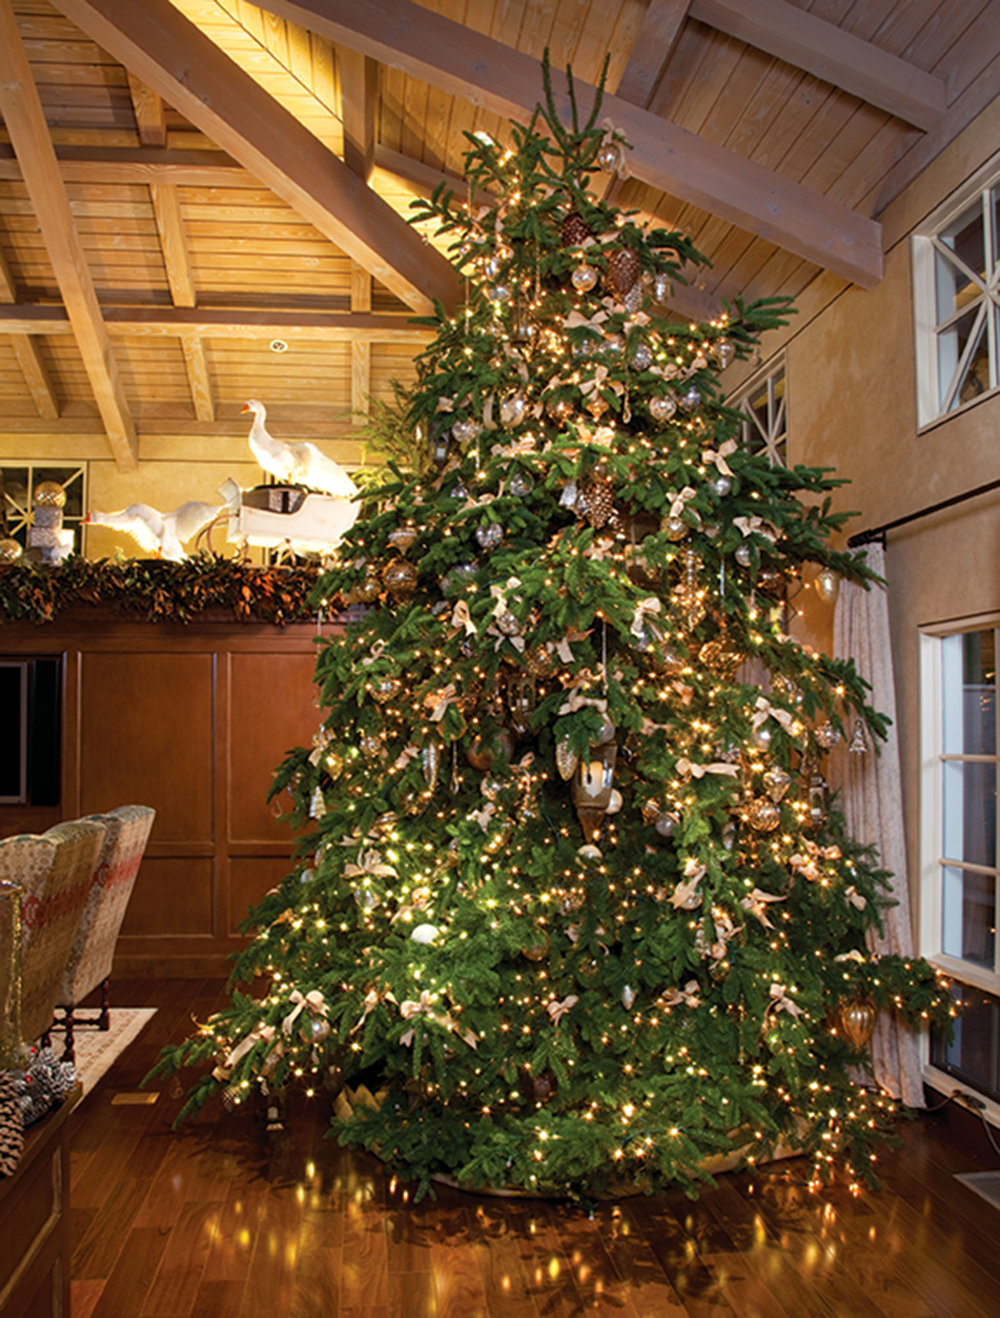 A 23-foot-high noble fir complements the high ceilings of the family room. The tree's ornaments are made of mercury glass — double-walled with silver in between — to reflect the light around the room.